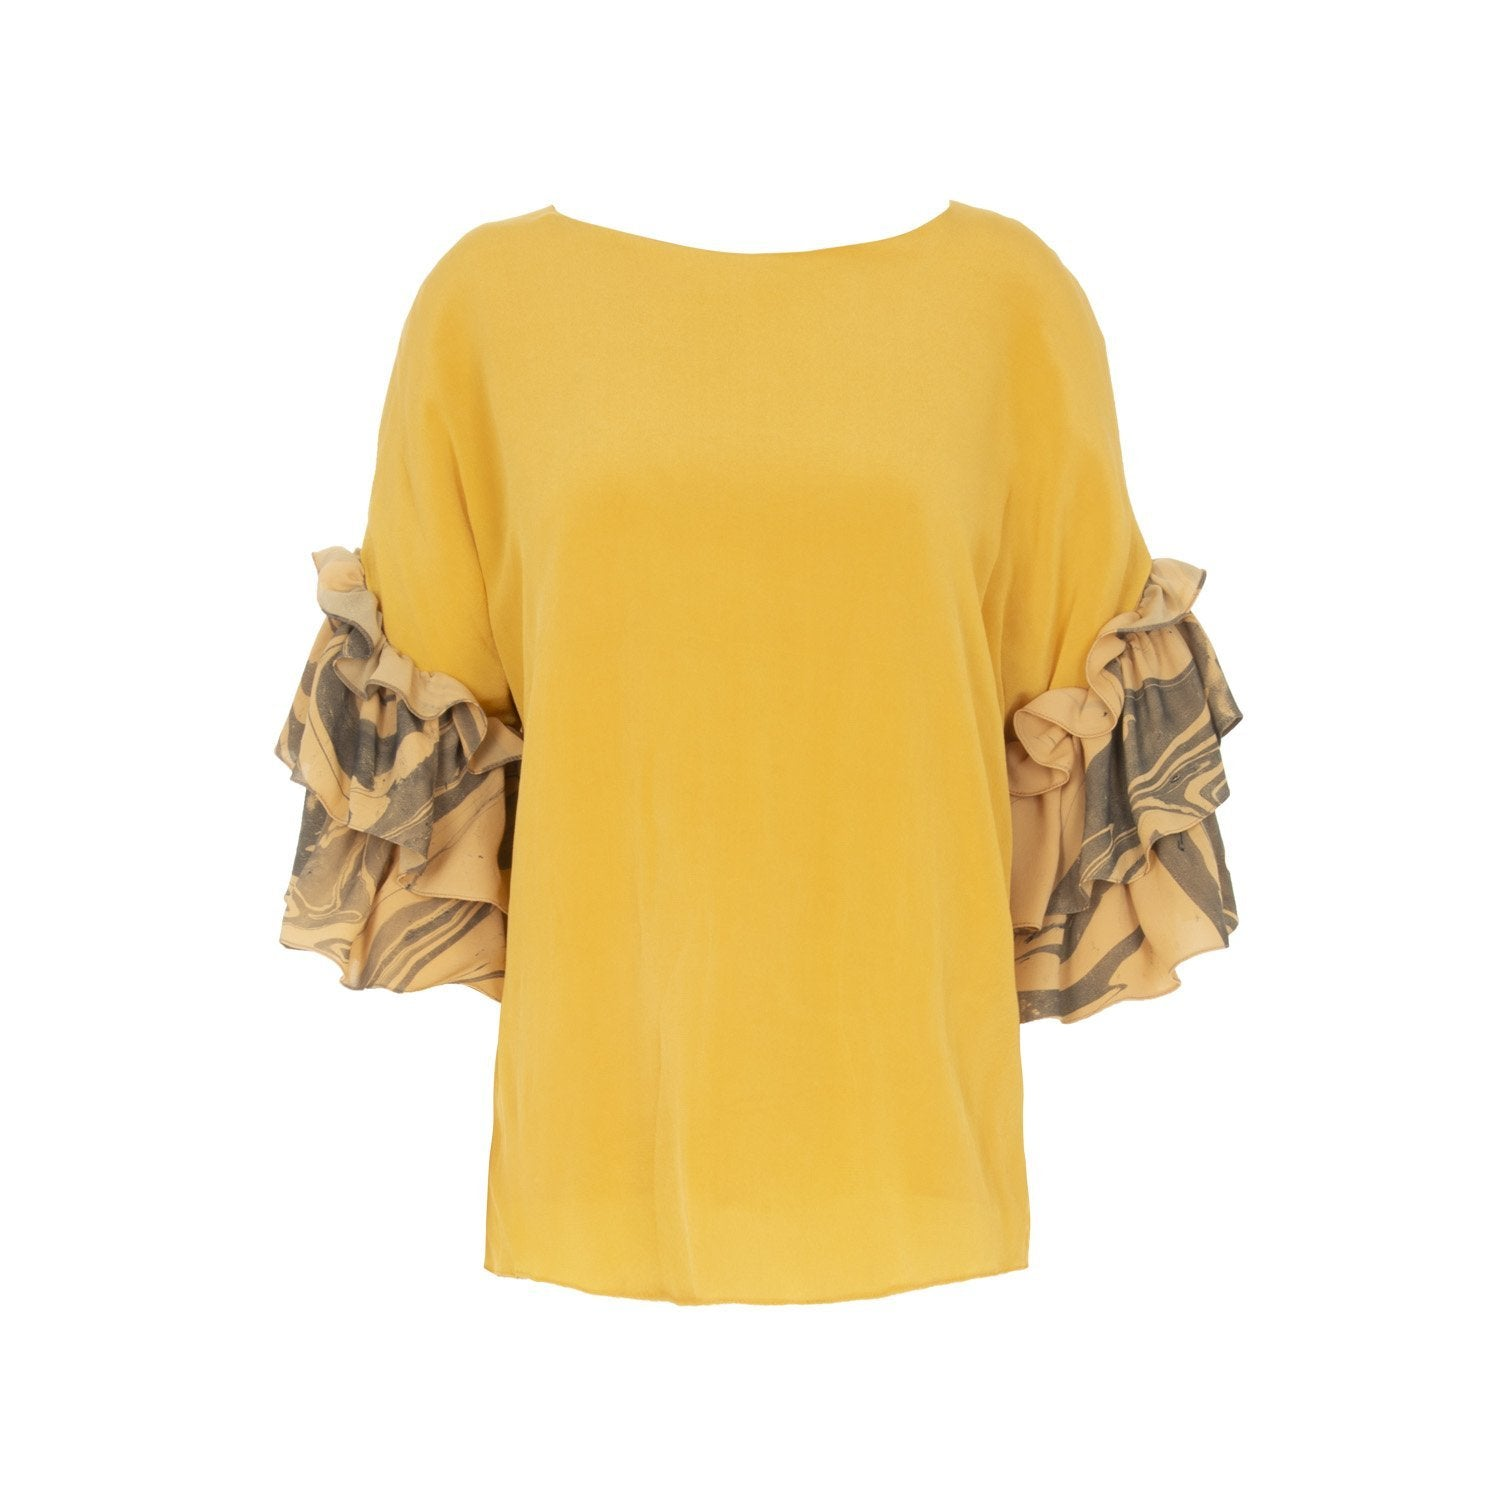 Hand Marbled Contrast Flounce Top - The Clothing LoungeEdward Mongzar